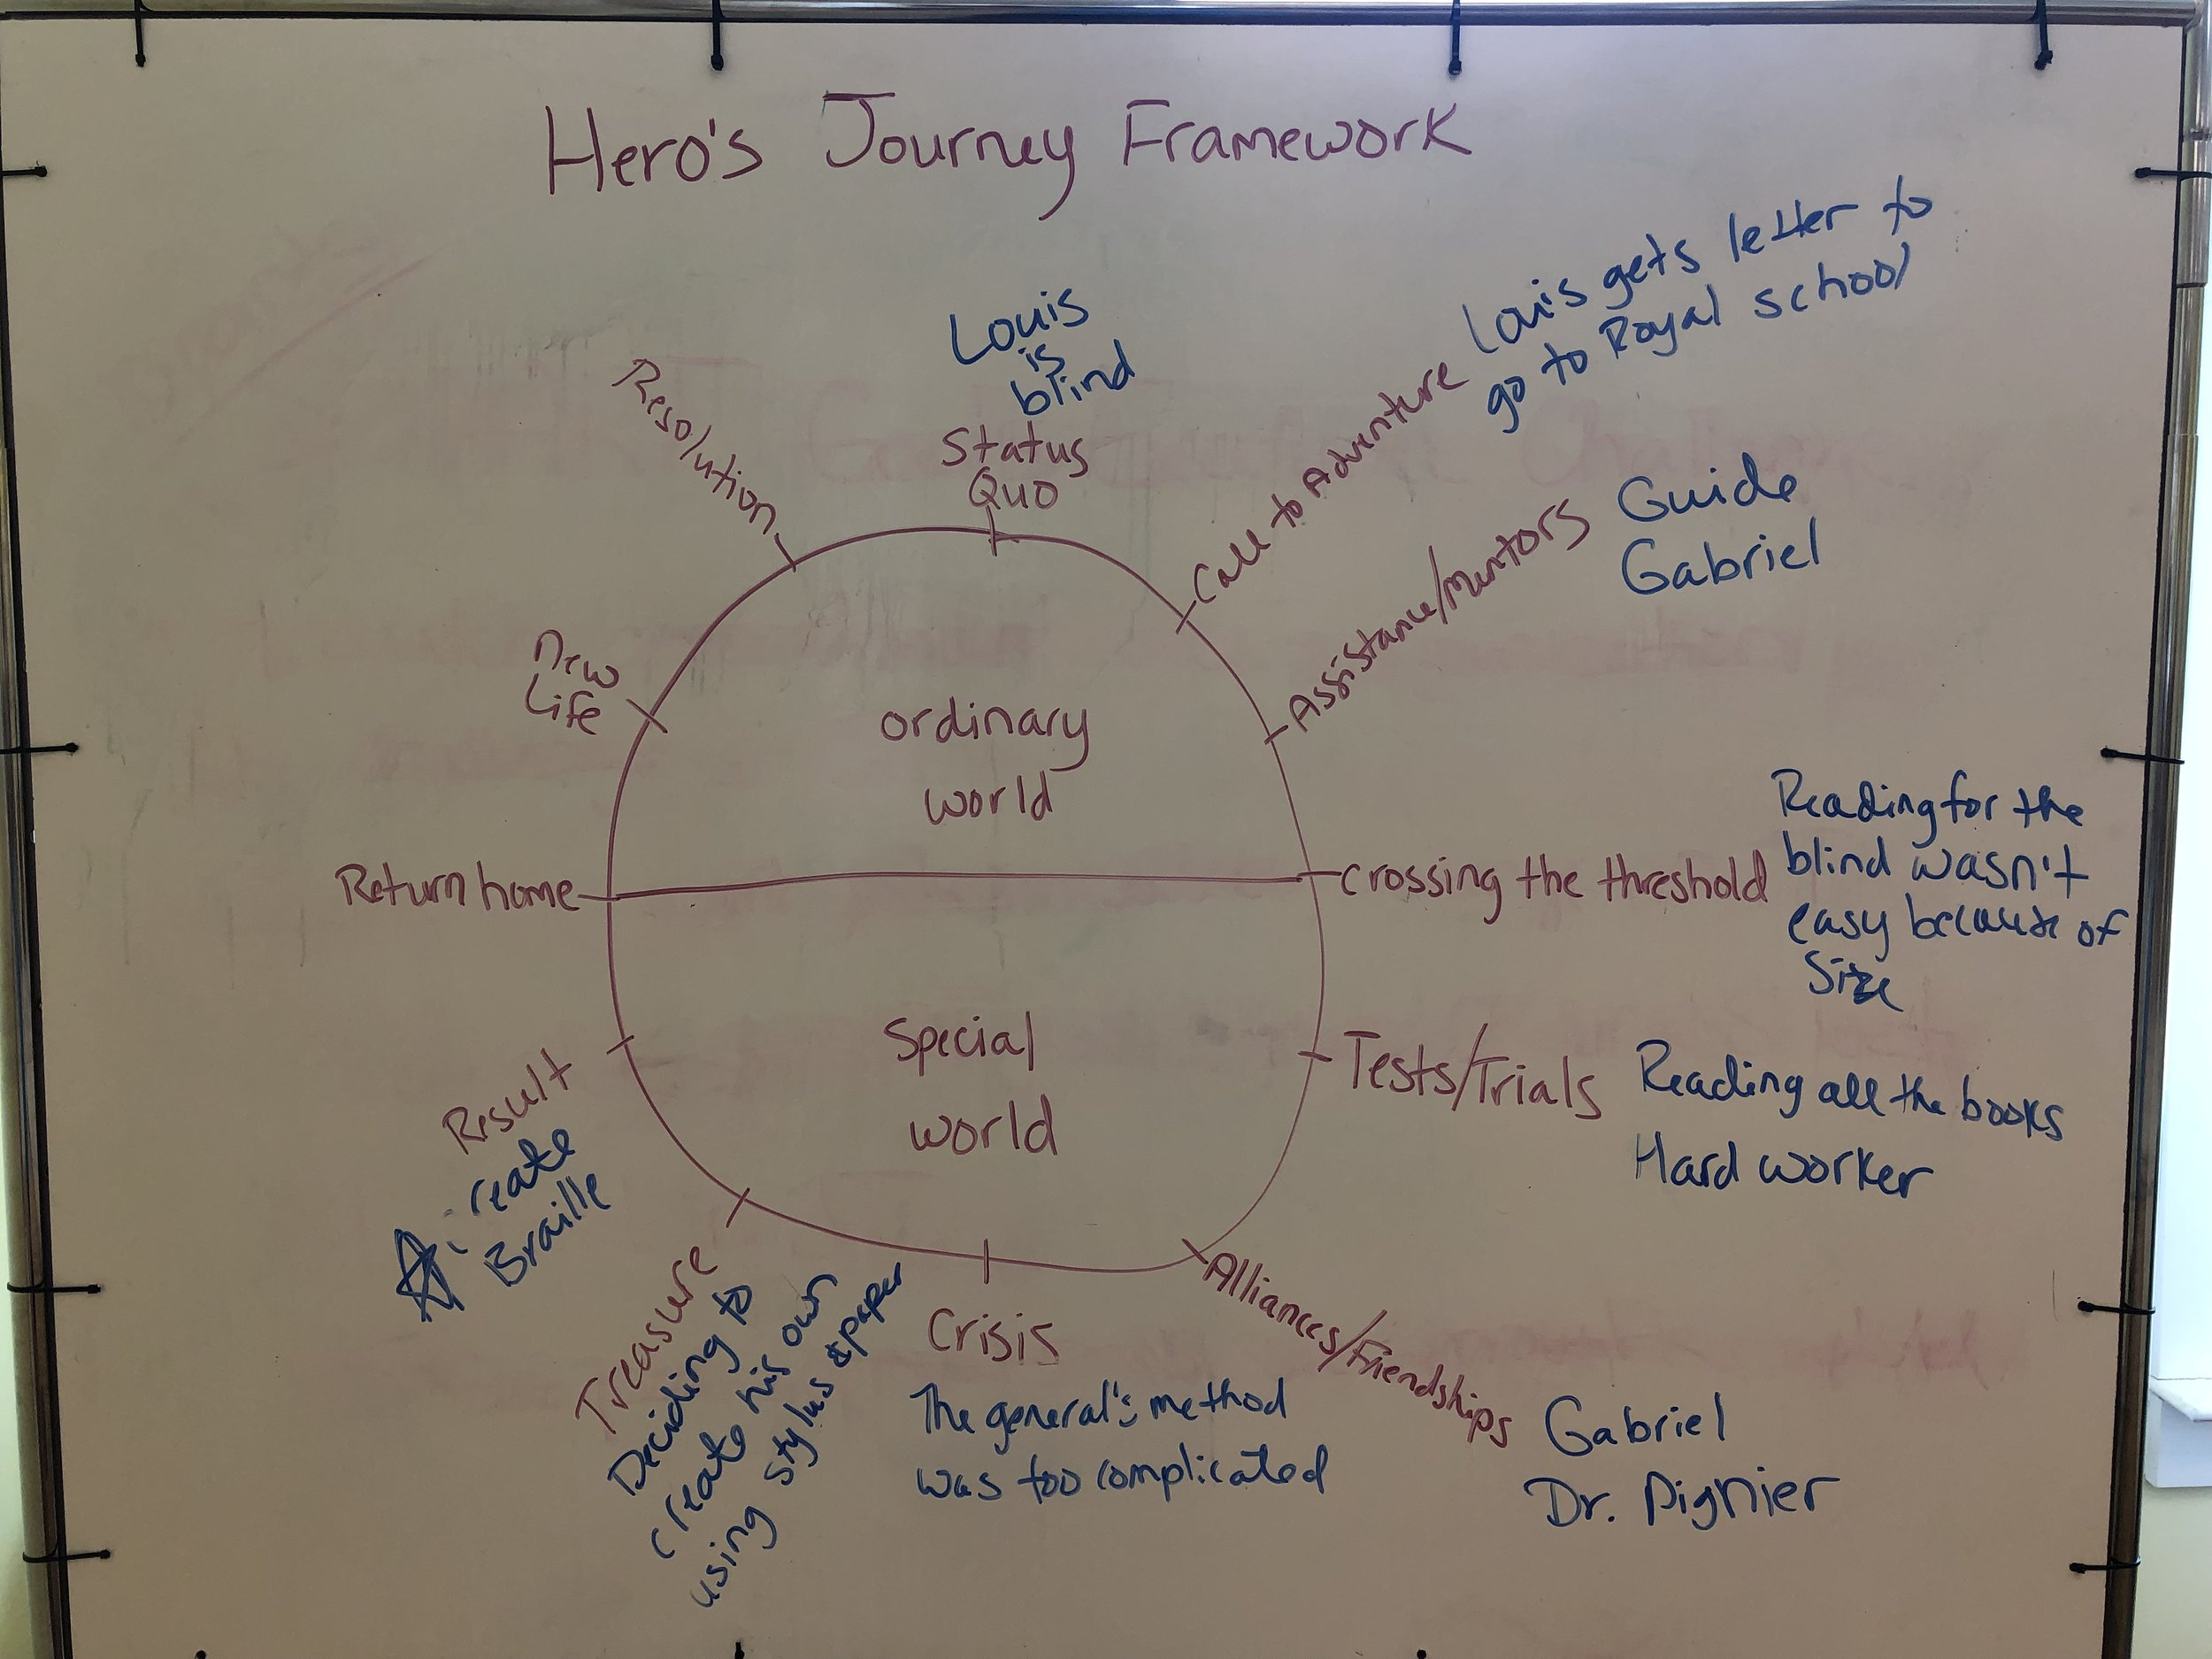 Hero's Journey Framework For The Book: Six Dots